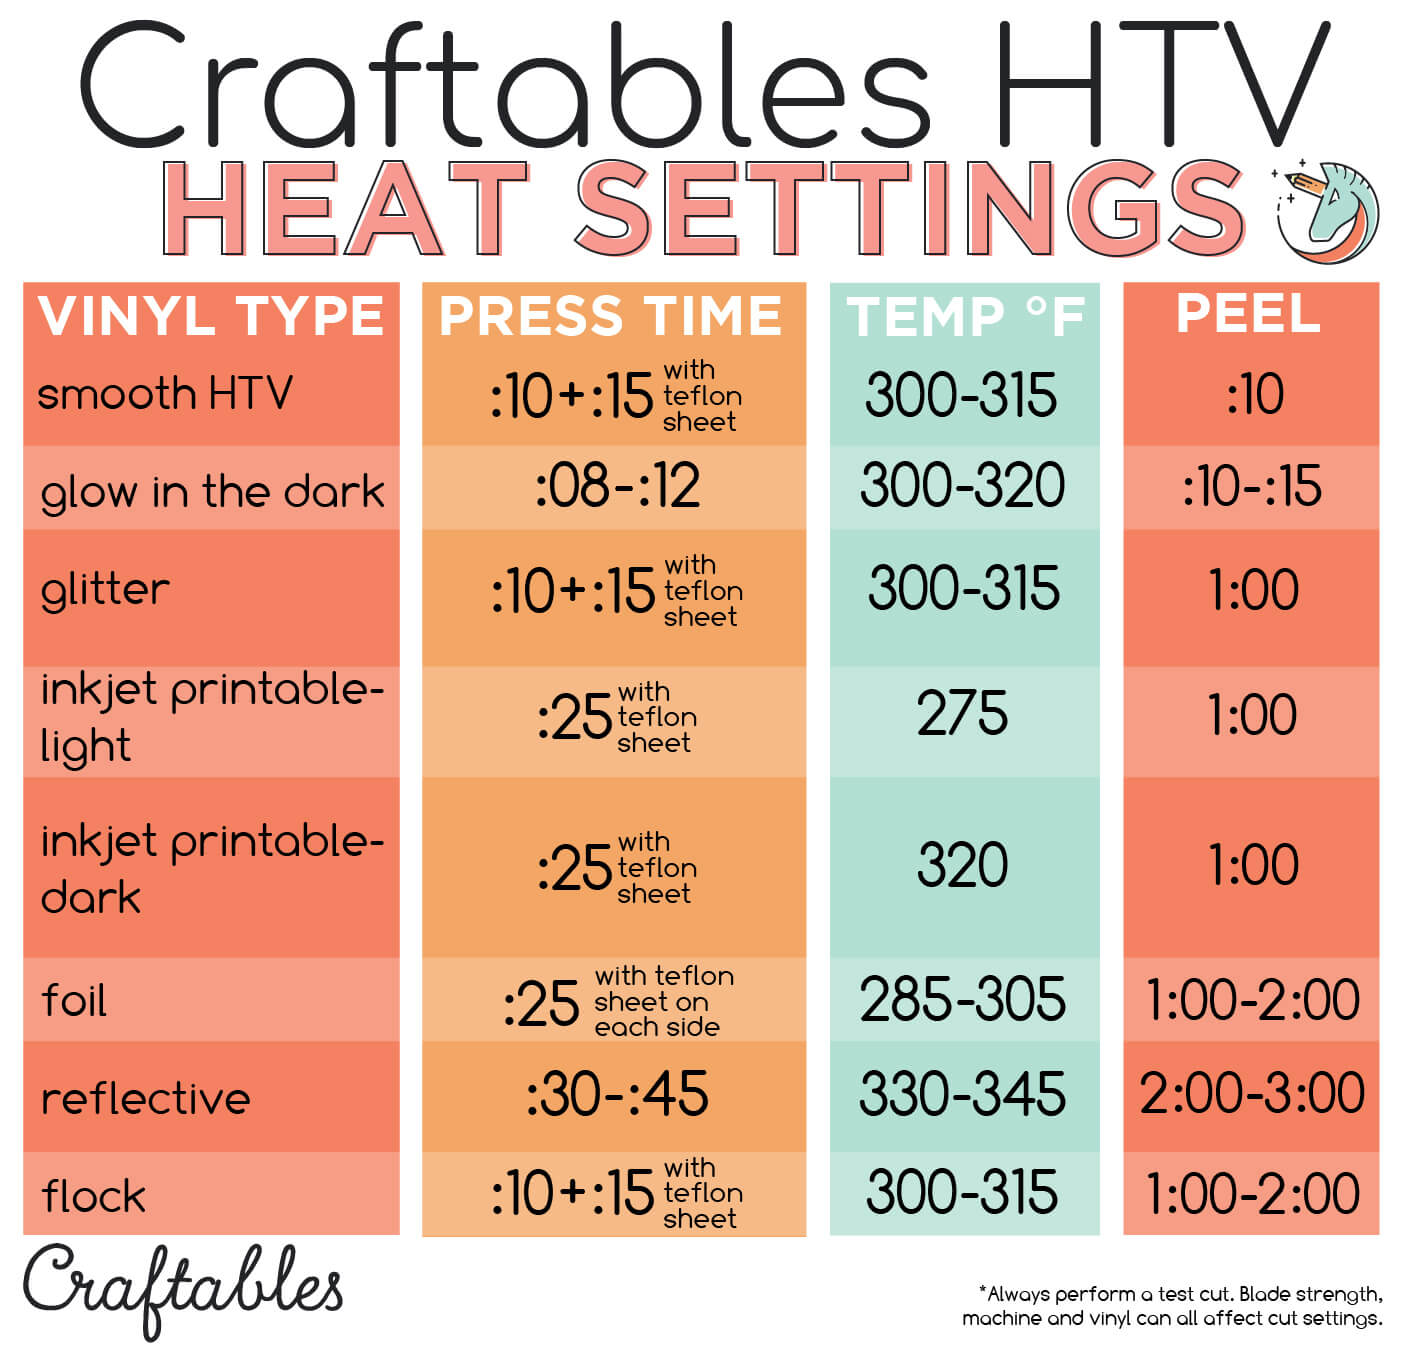 craftables-htv-heat-settings.jpg